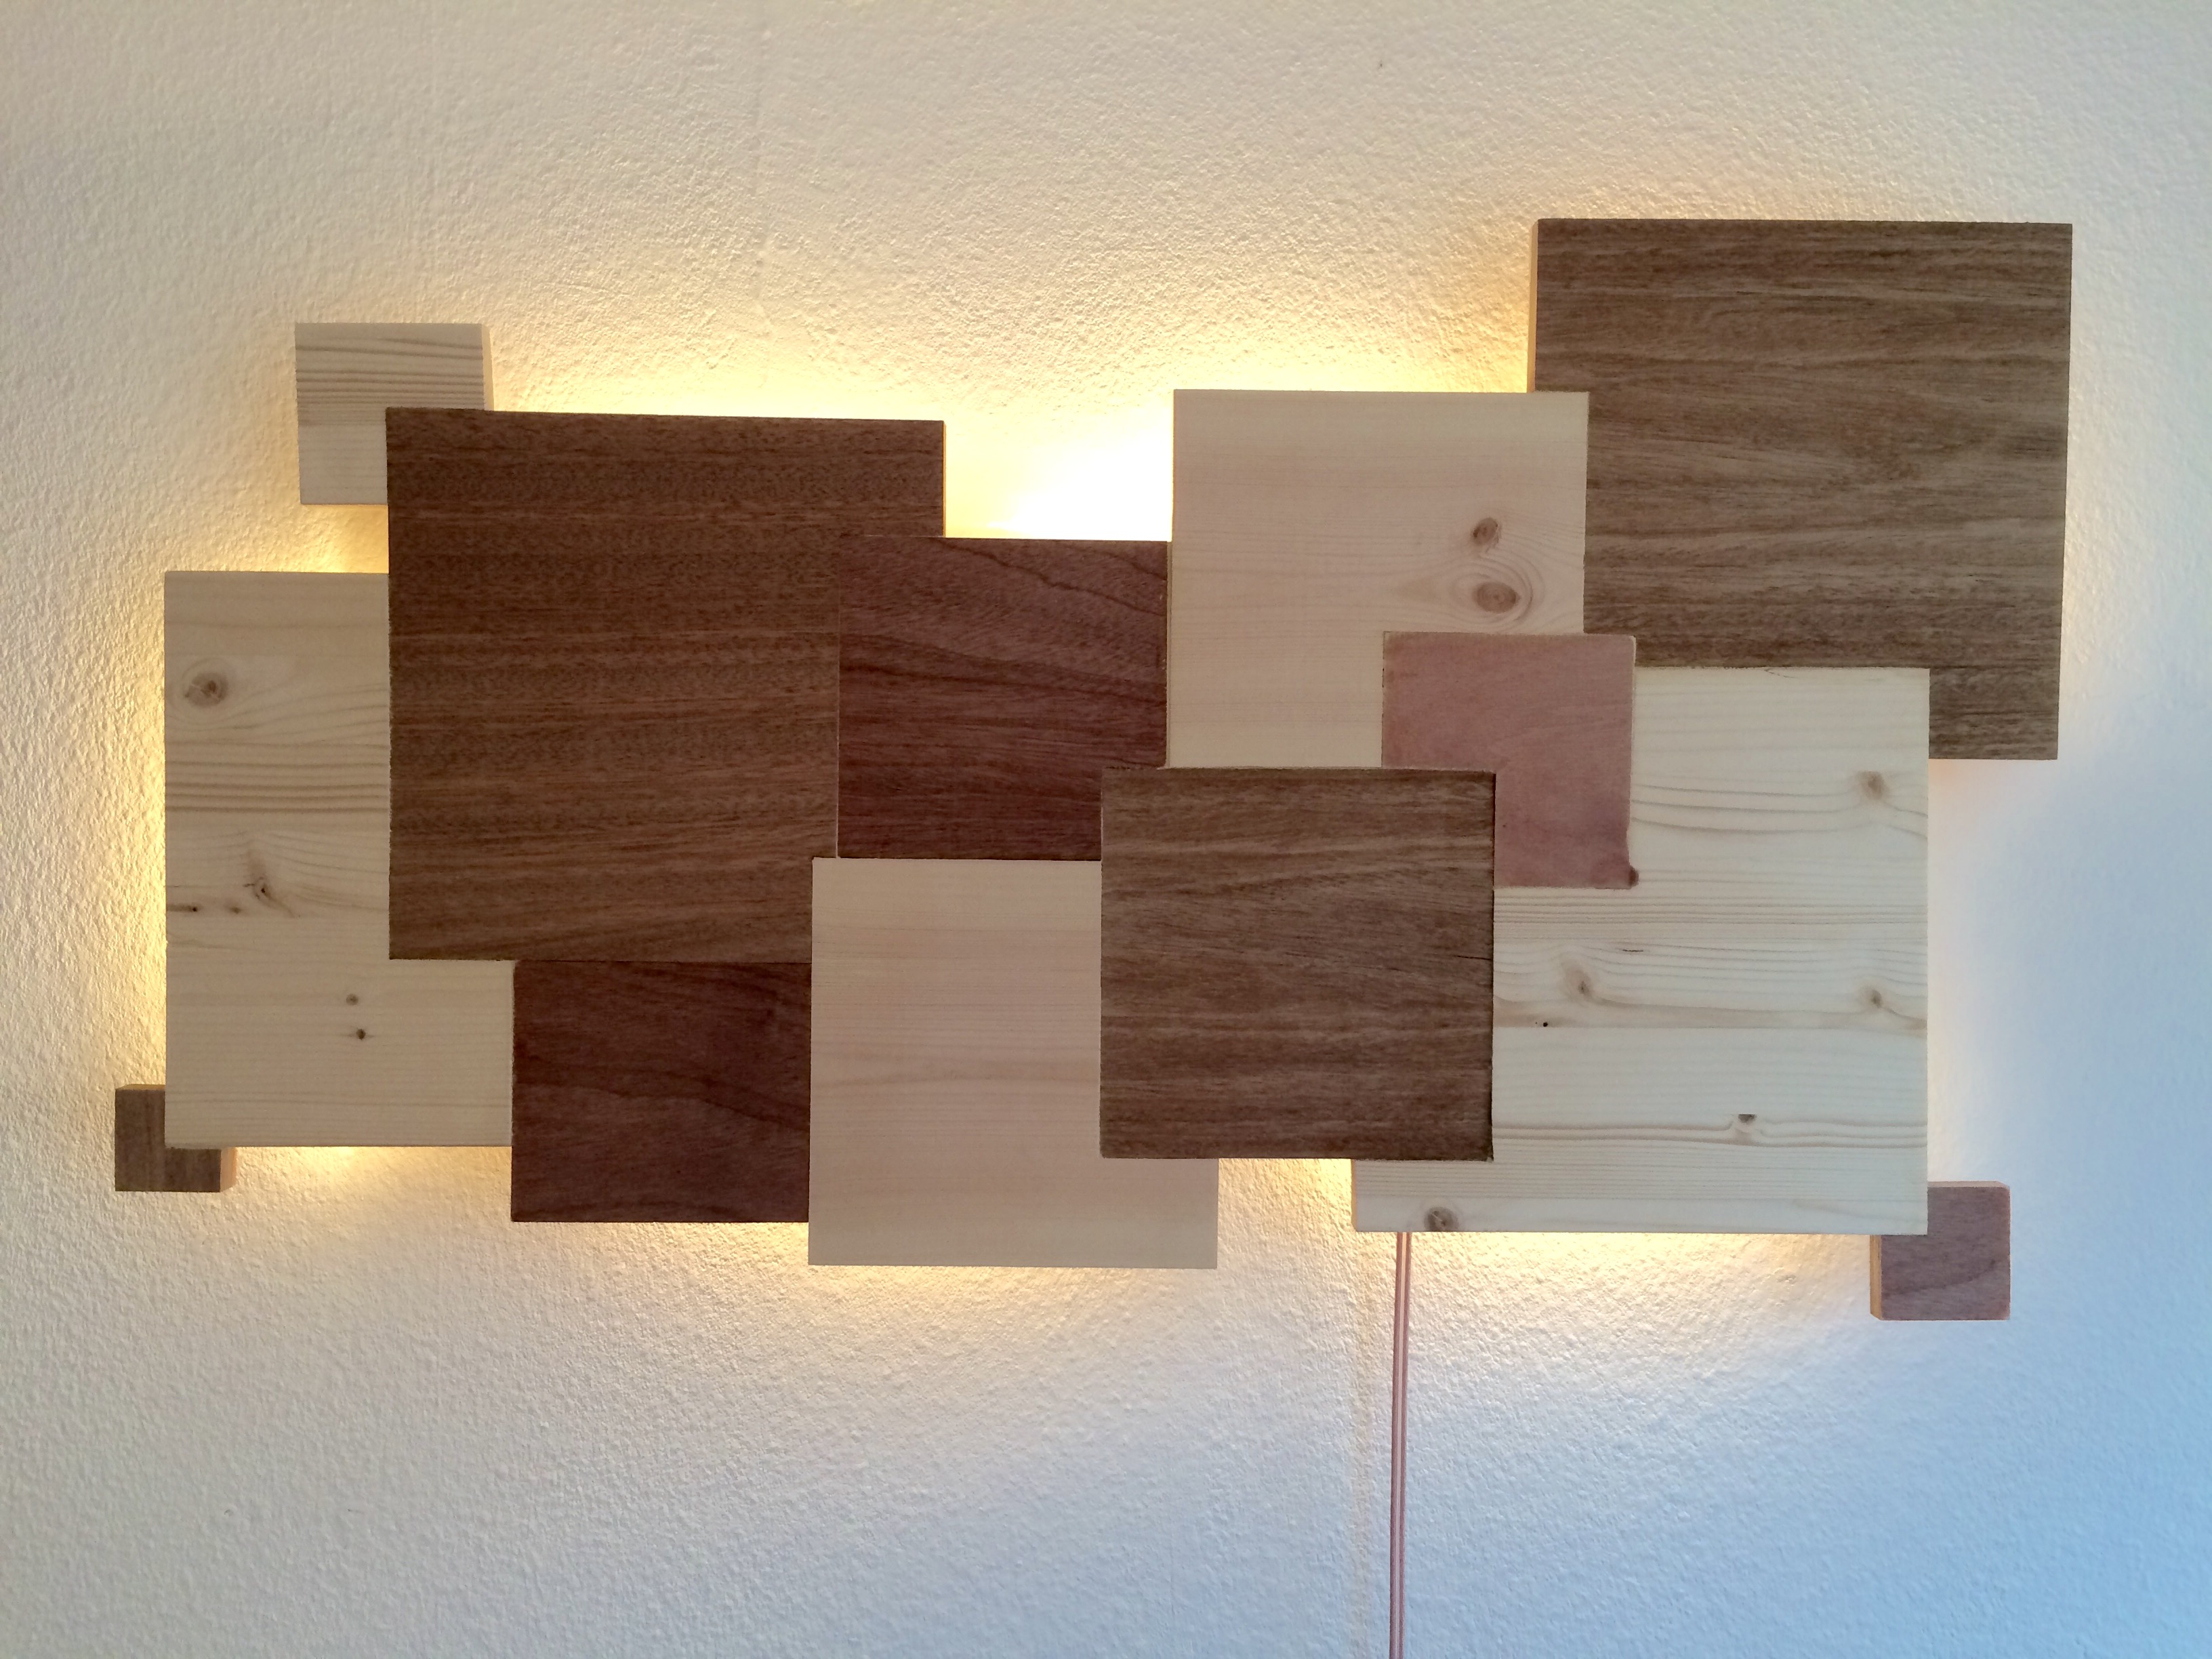 Fabulous David Bakker lamp muur hout - David Bakker @JC77